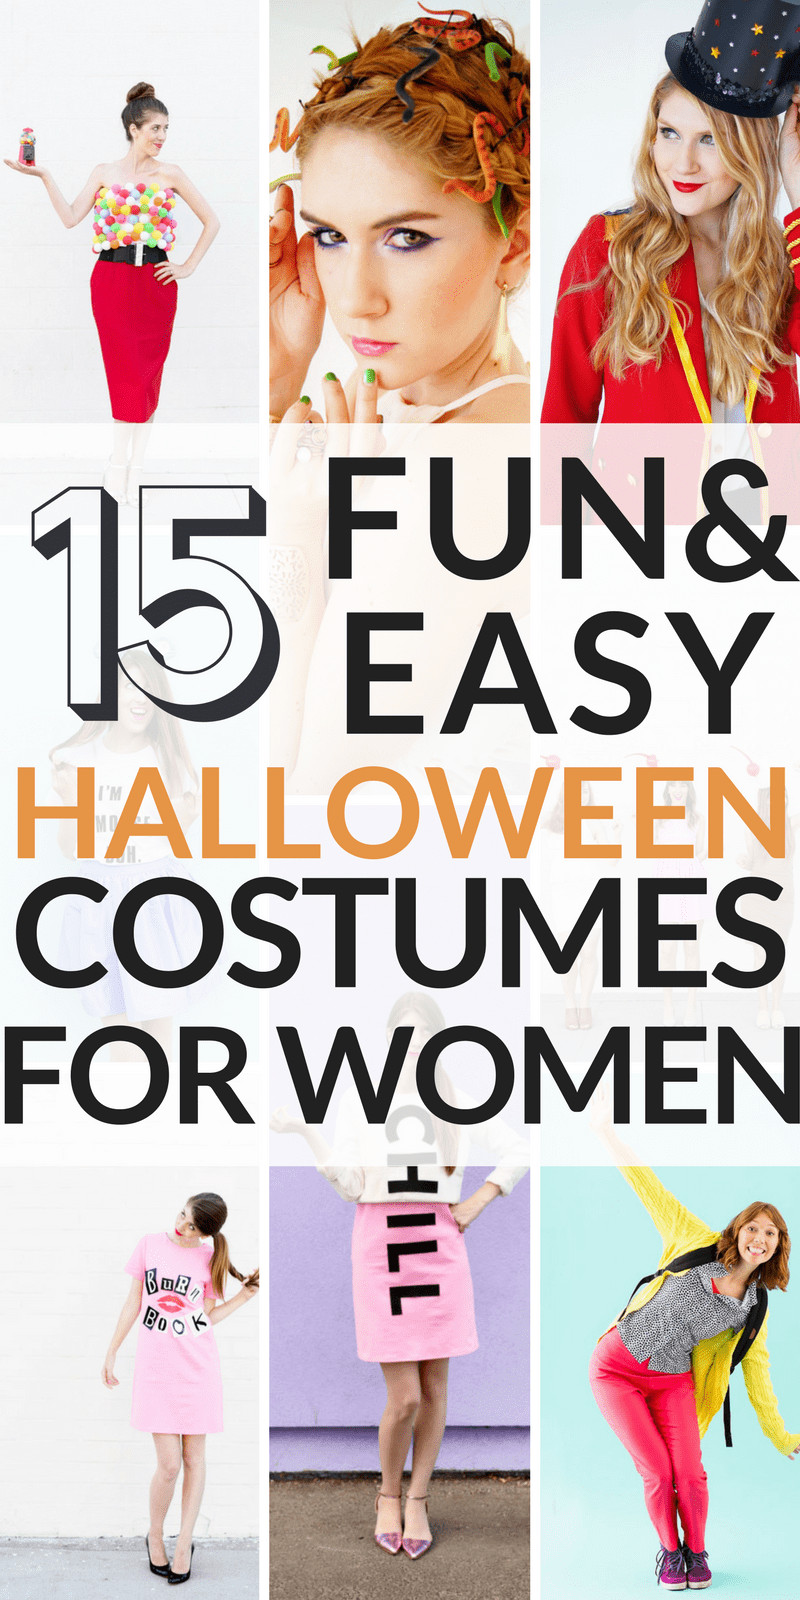 Simple DIY Halloween Costumes For Adults  15 Cheap and Easy DIY Halloween Costumes for Women